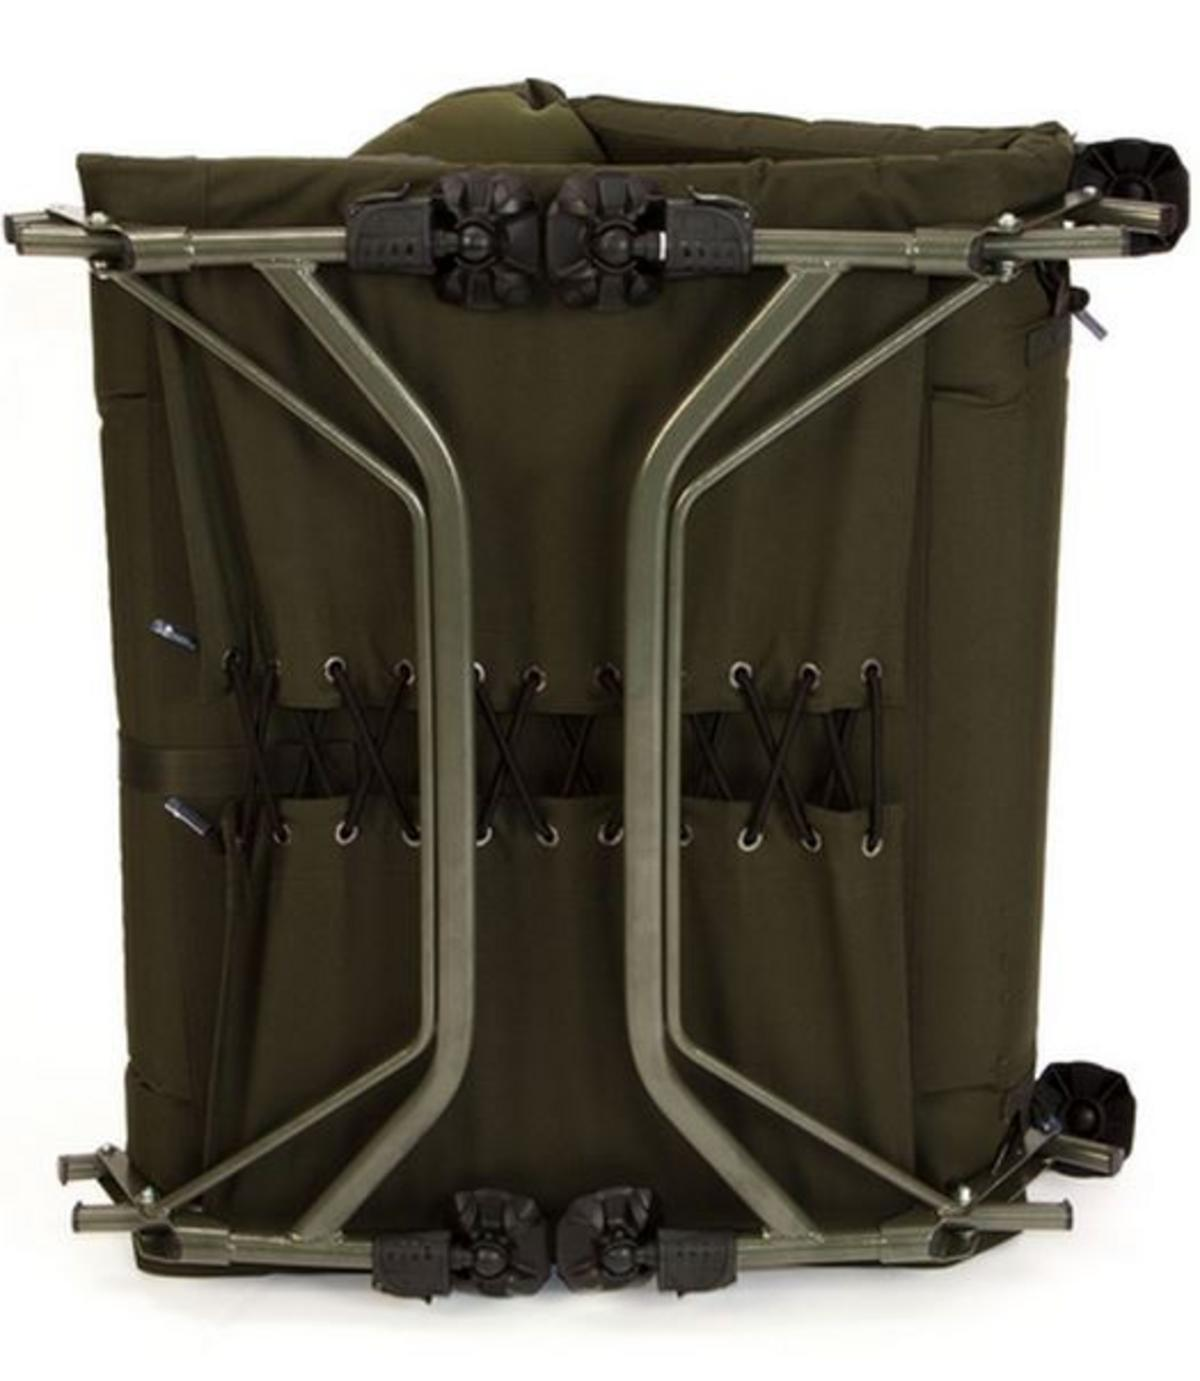 daiwa fishing chair toys r us high chairs new infinity plateau bedchair dipbc1 and bed